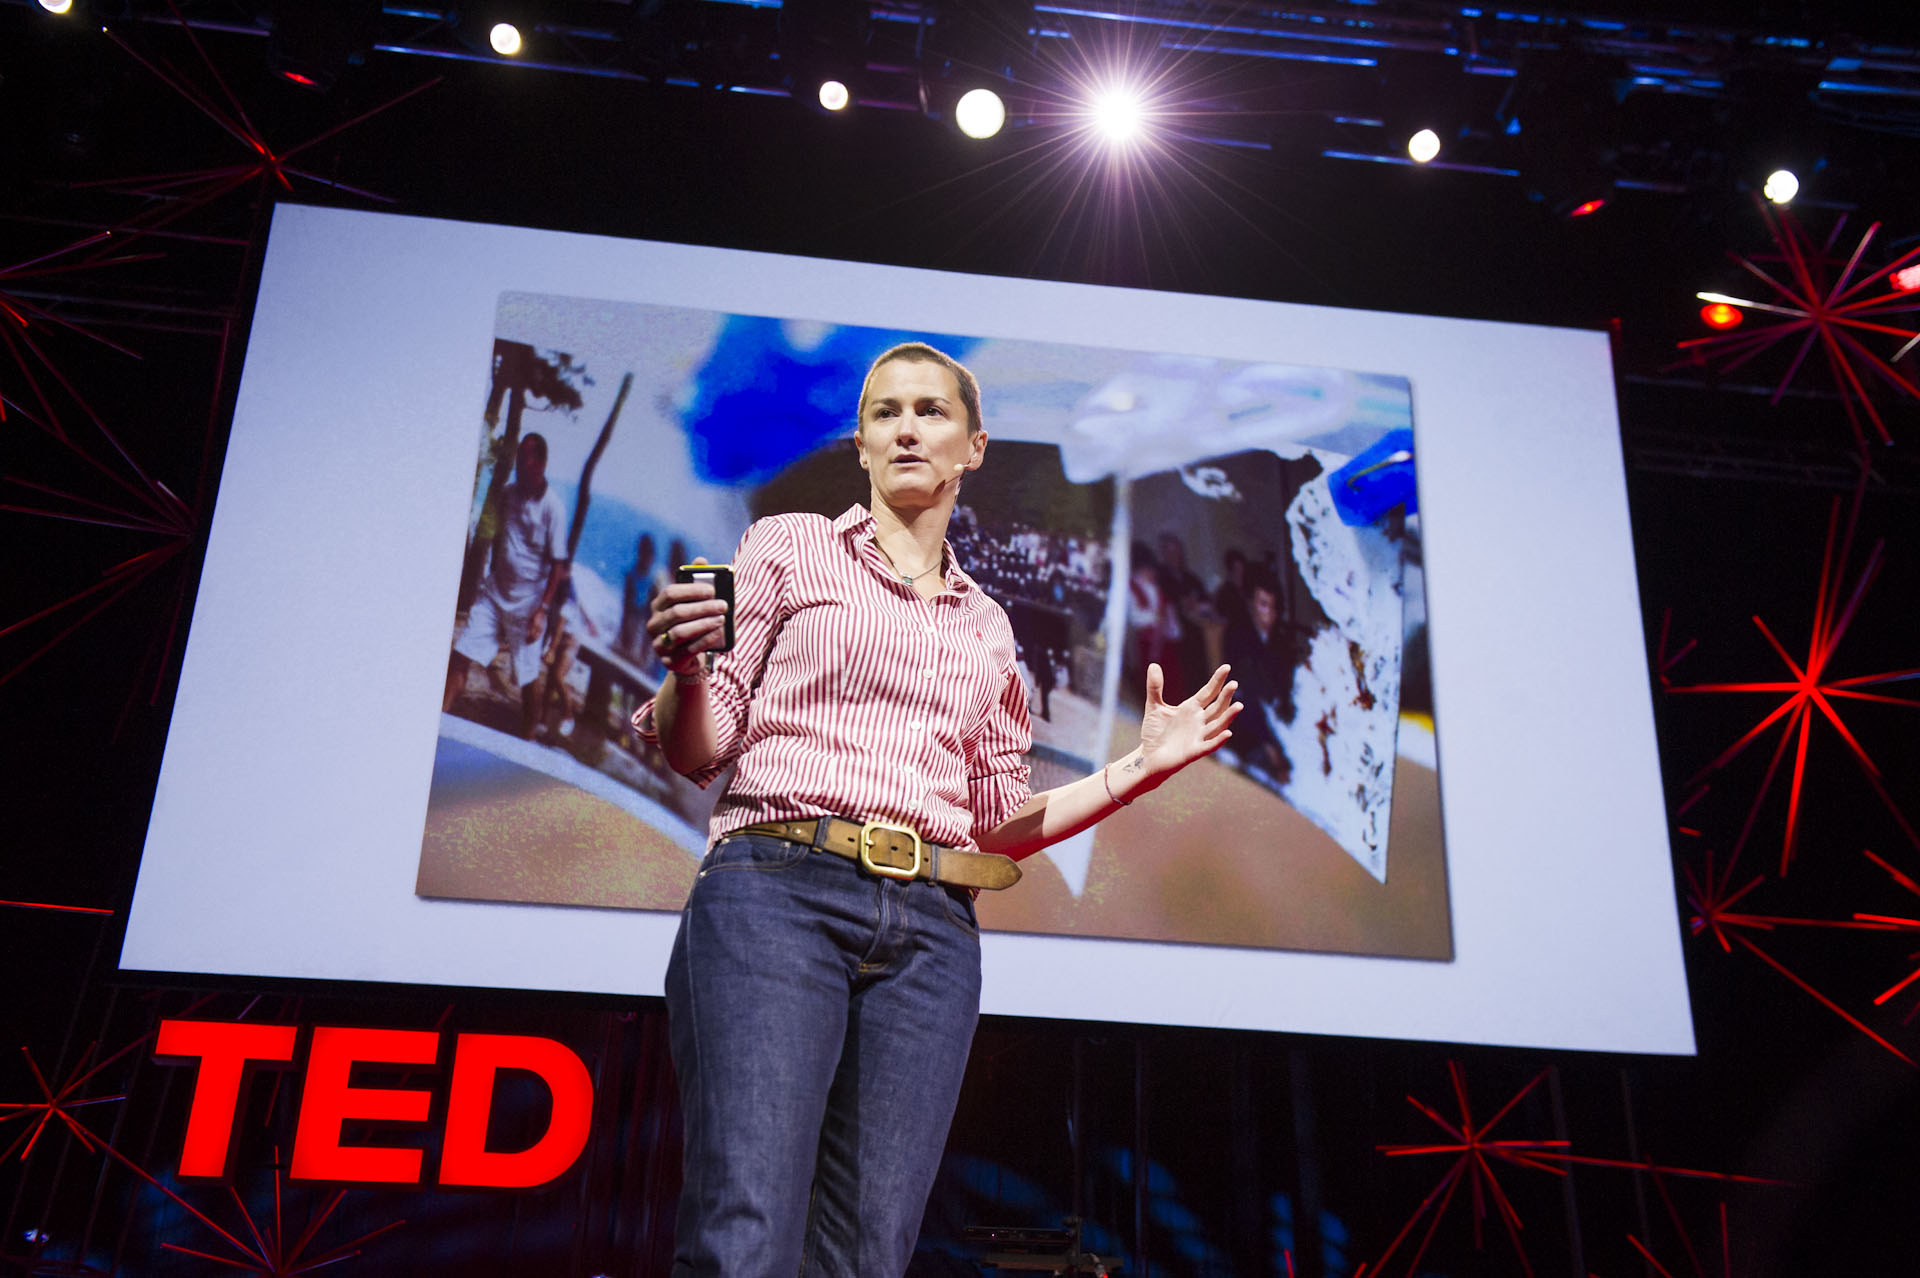 Becci Manson talks at the TED Conference.